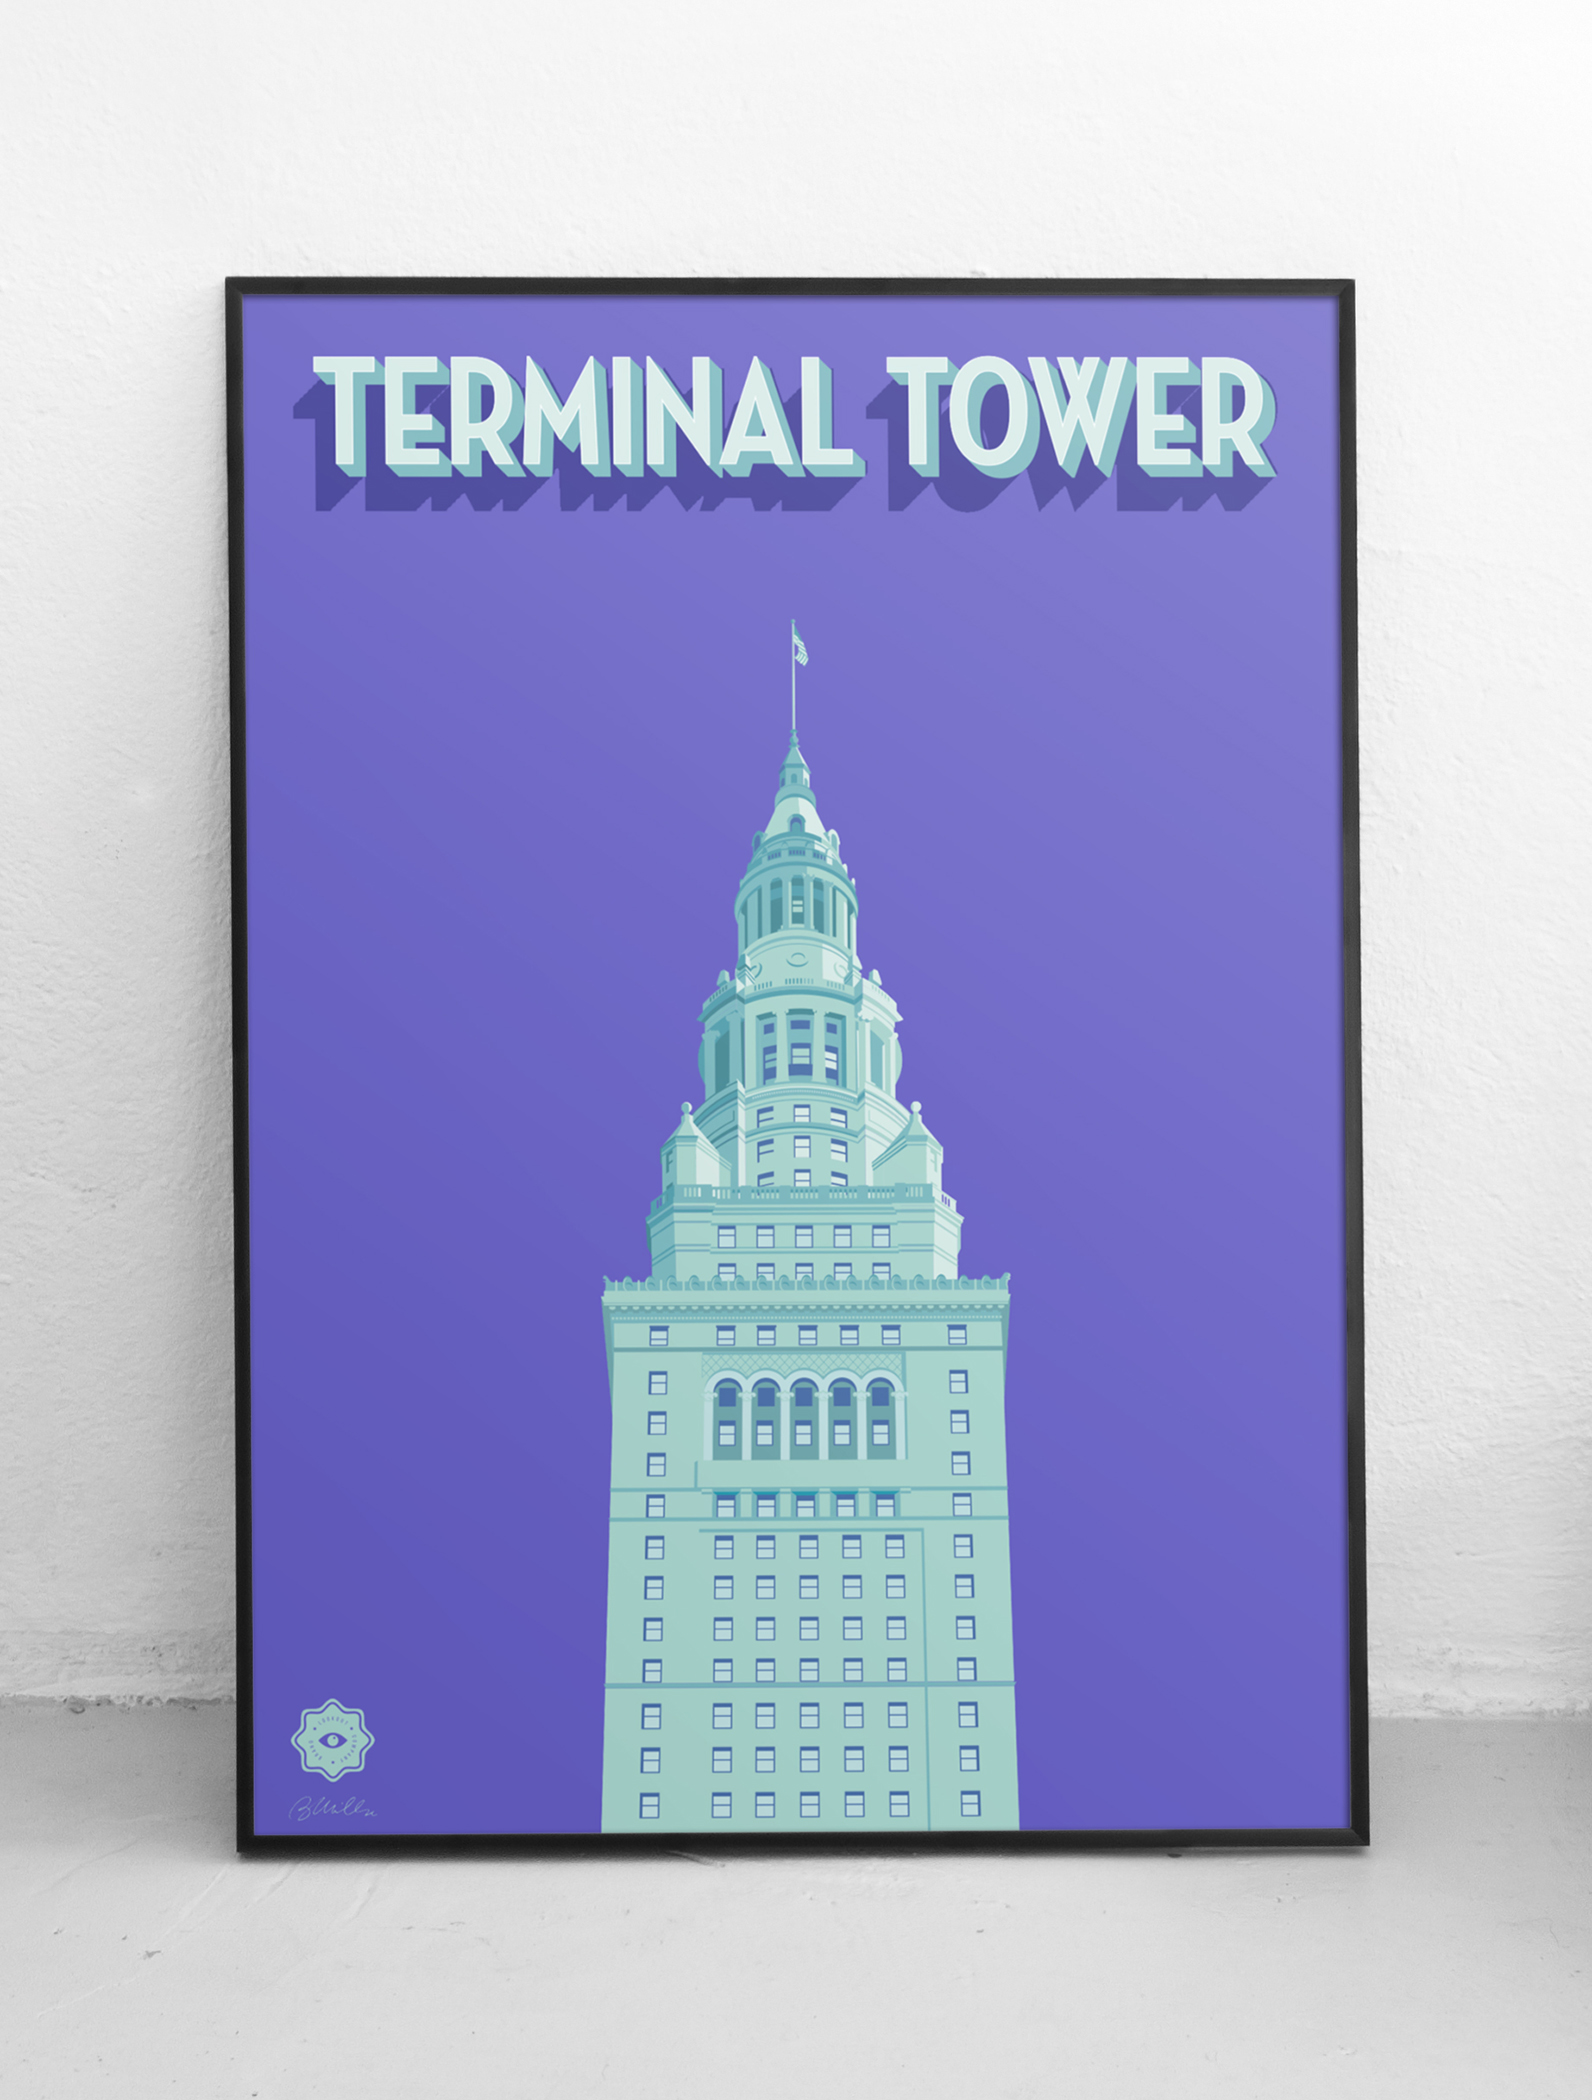 terminal_tower_frame.jpg